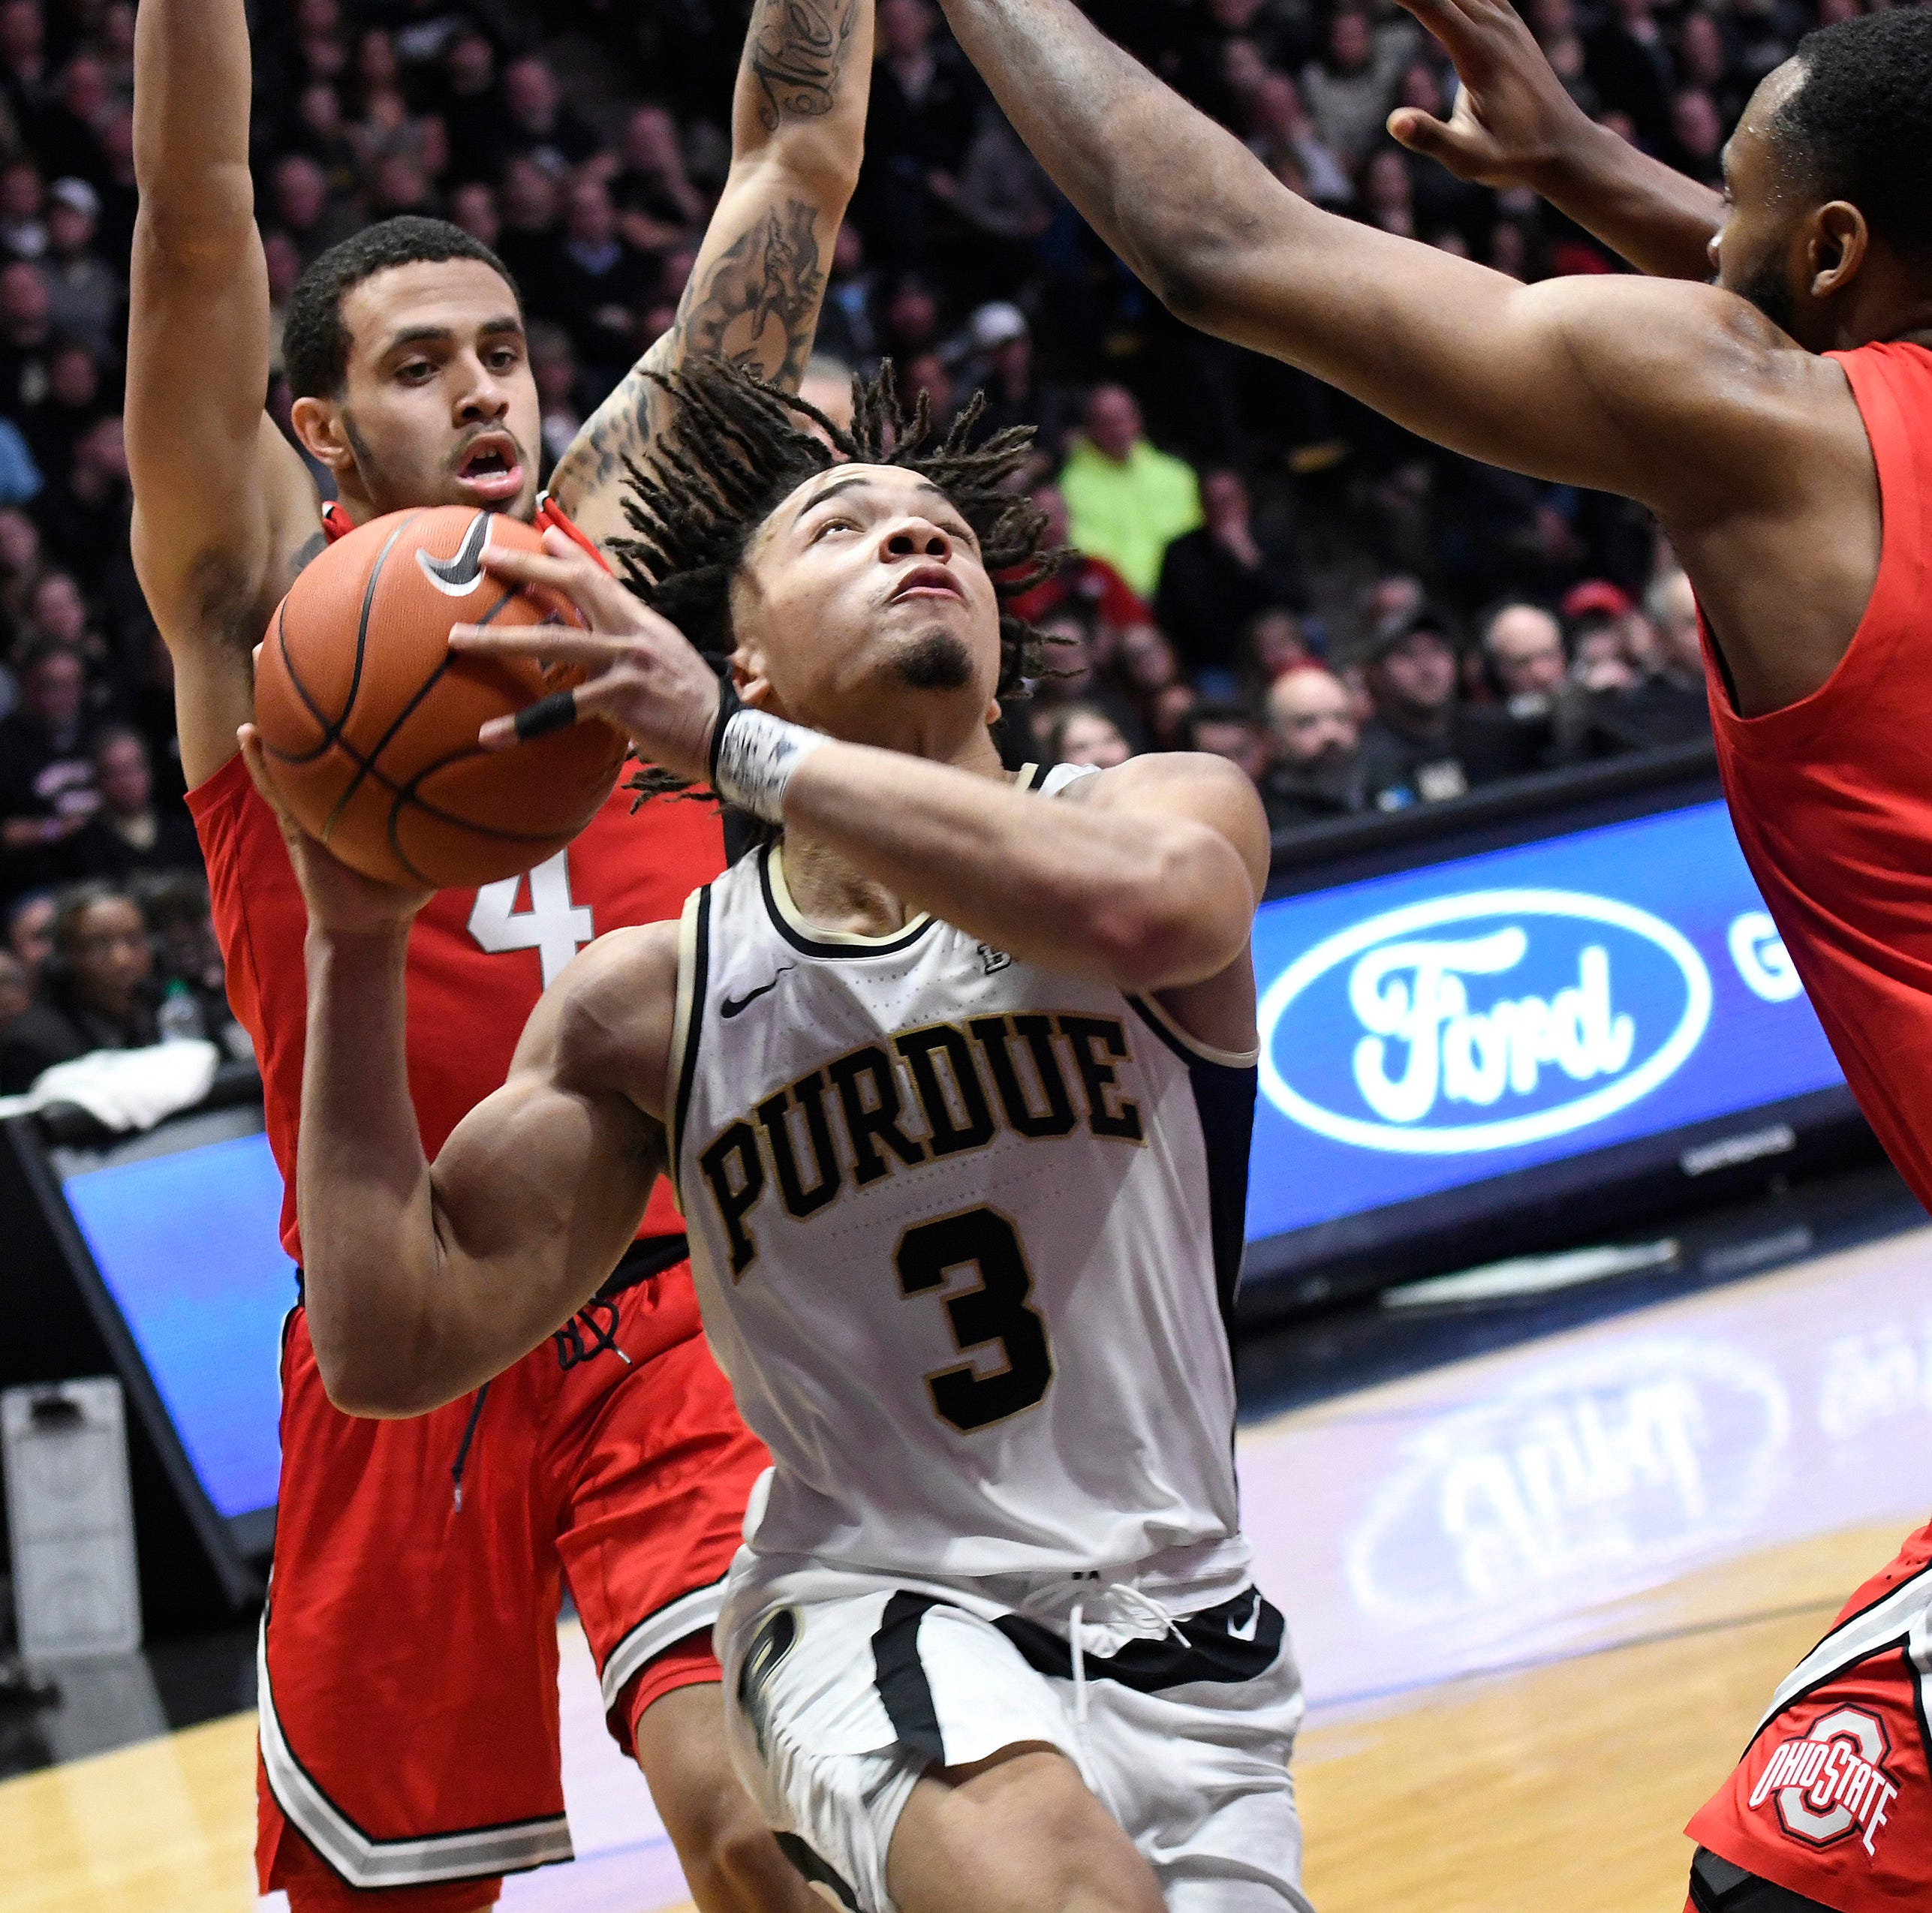 Scouting Purdue basketball vs. Old Dominion in NCAA tournament